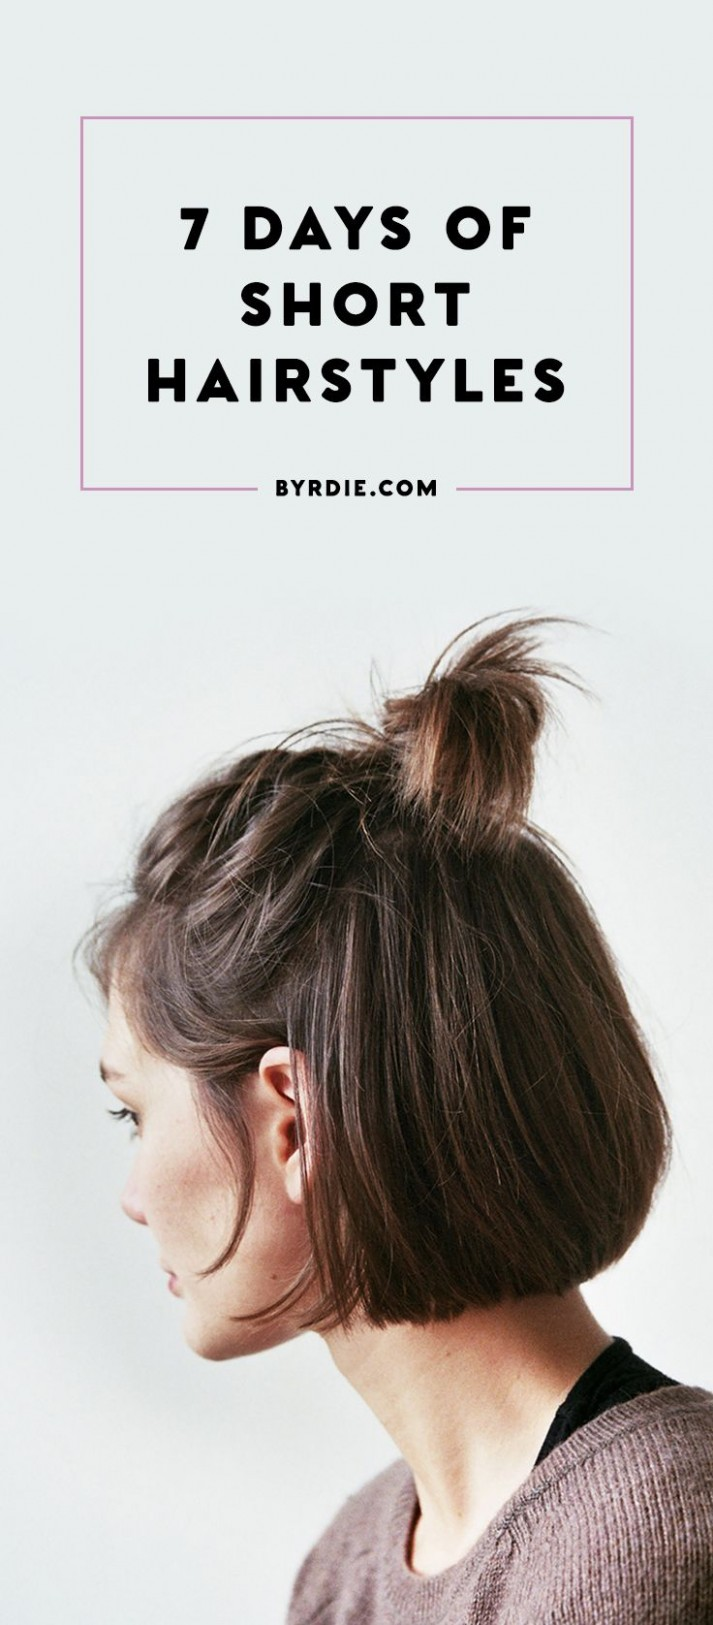 8 Chic Ways To Style Short Hair Short Hair Styles Easy, Short Everyday Hairstyles For Short Hair